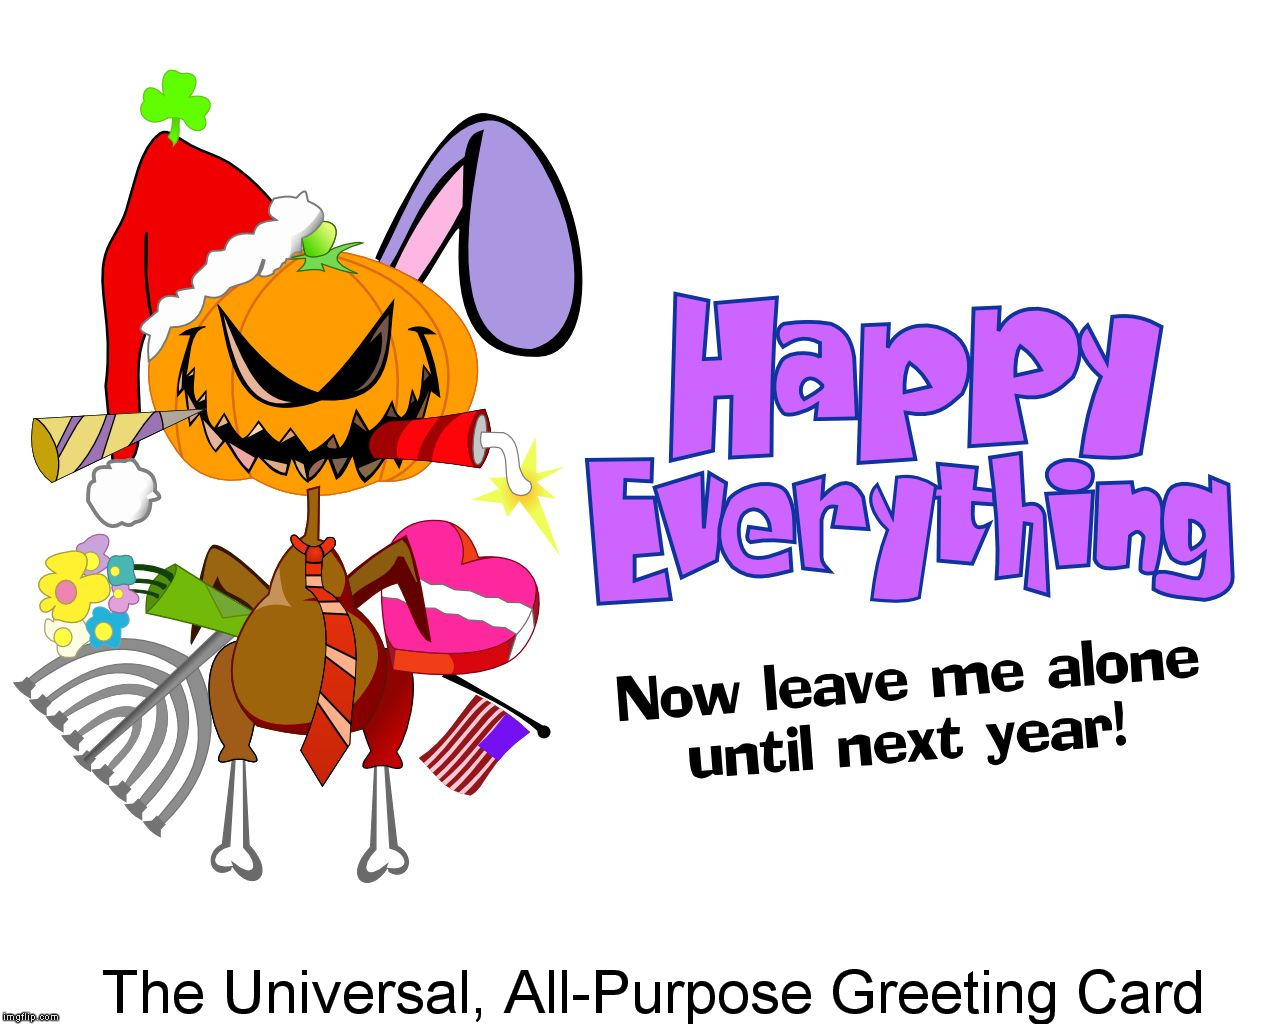 Happy Everything - Now Go Away! | The Universal, All-Purpose Greeting Card | image tagged in greeting card | made w/ Imgflip meme maker